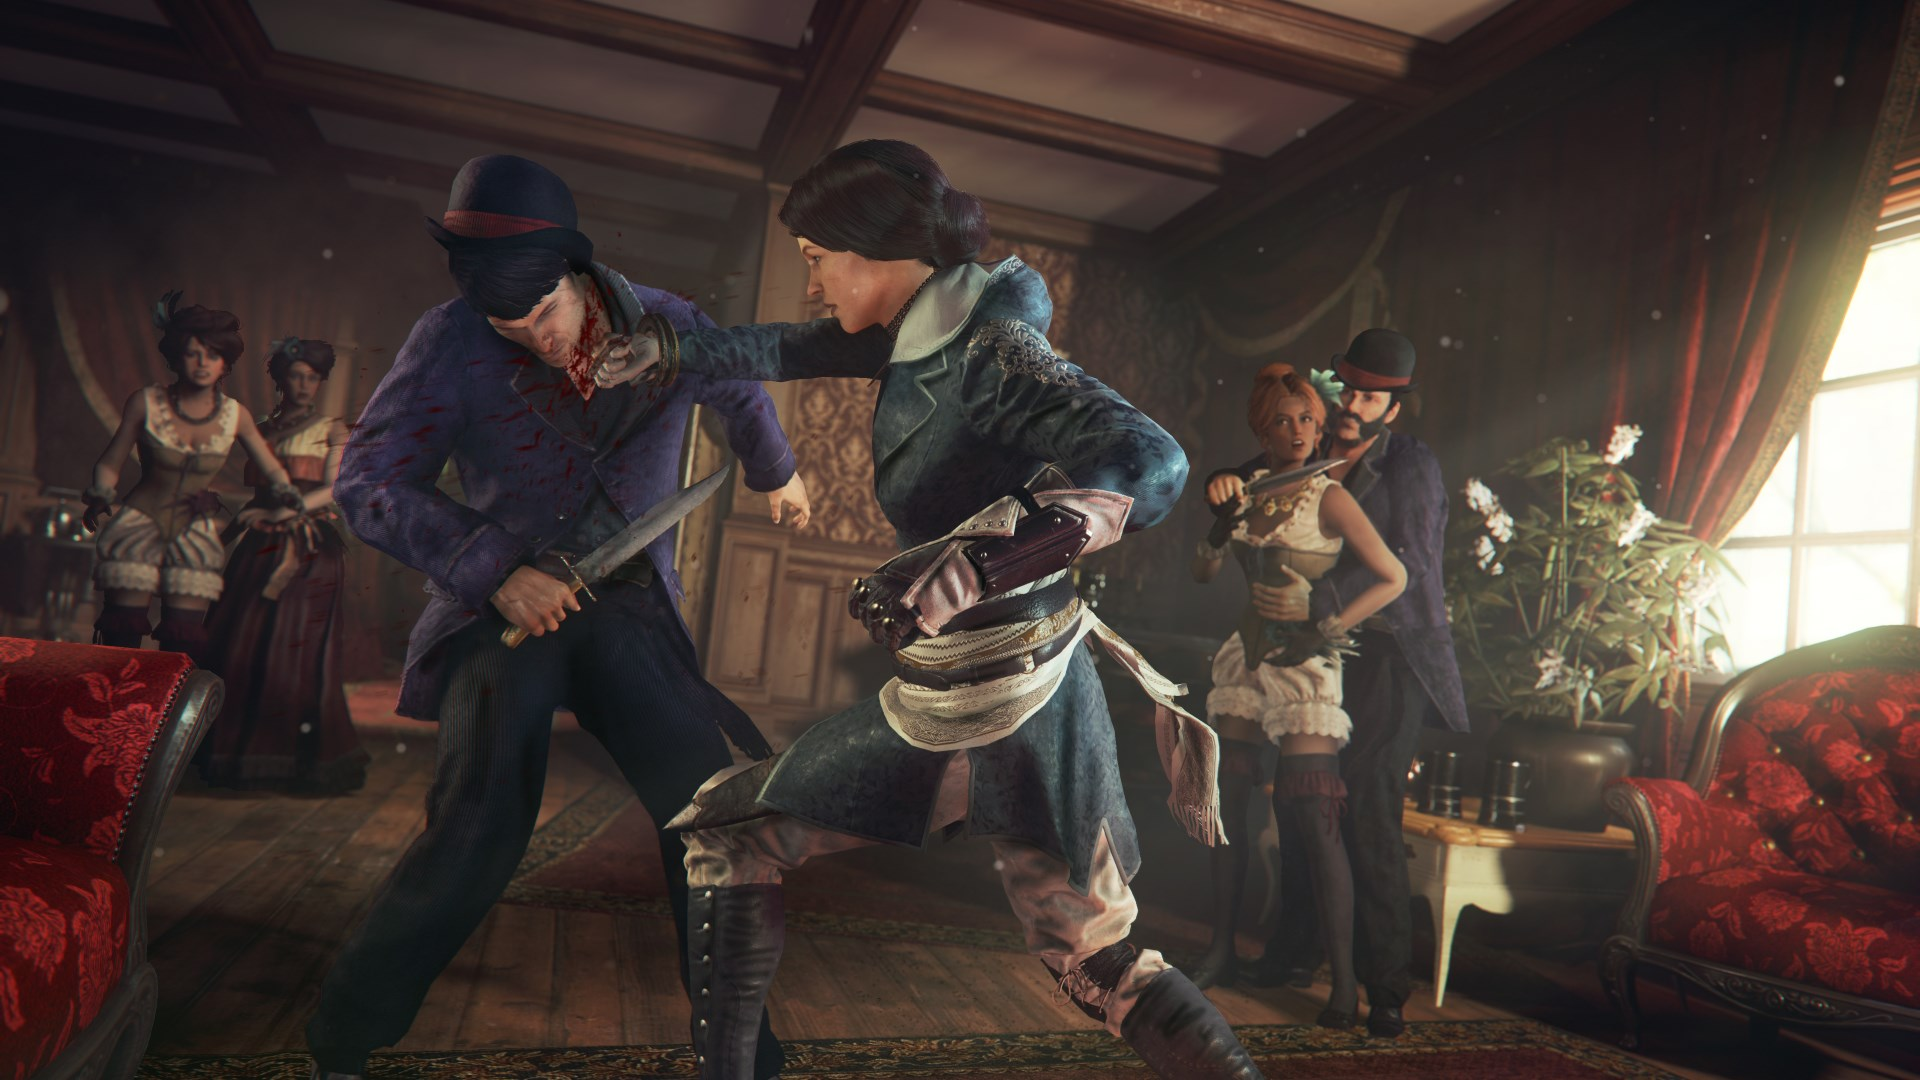 Jack the Ripper cuts some moves in new AC: Syndicate VR